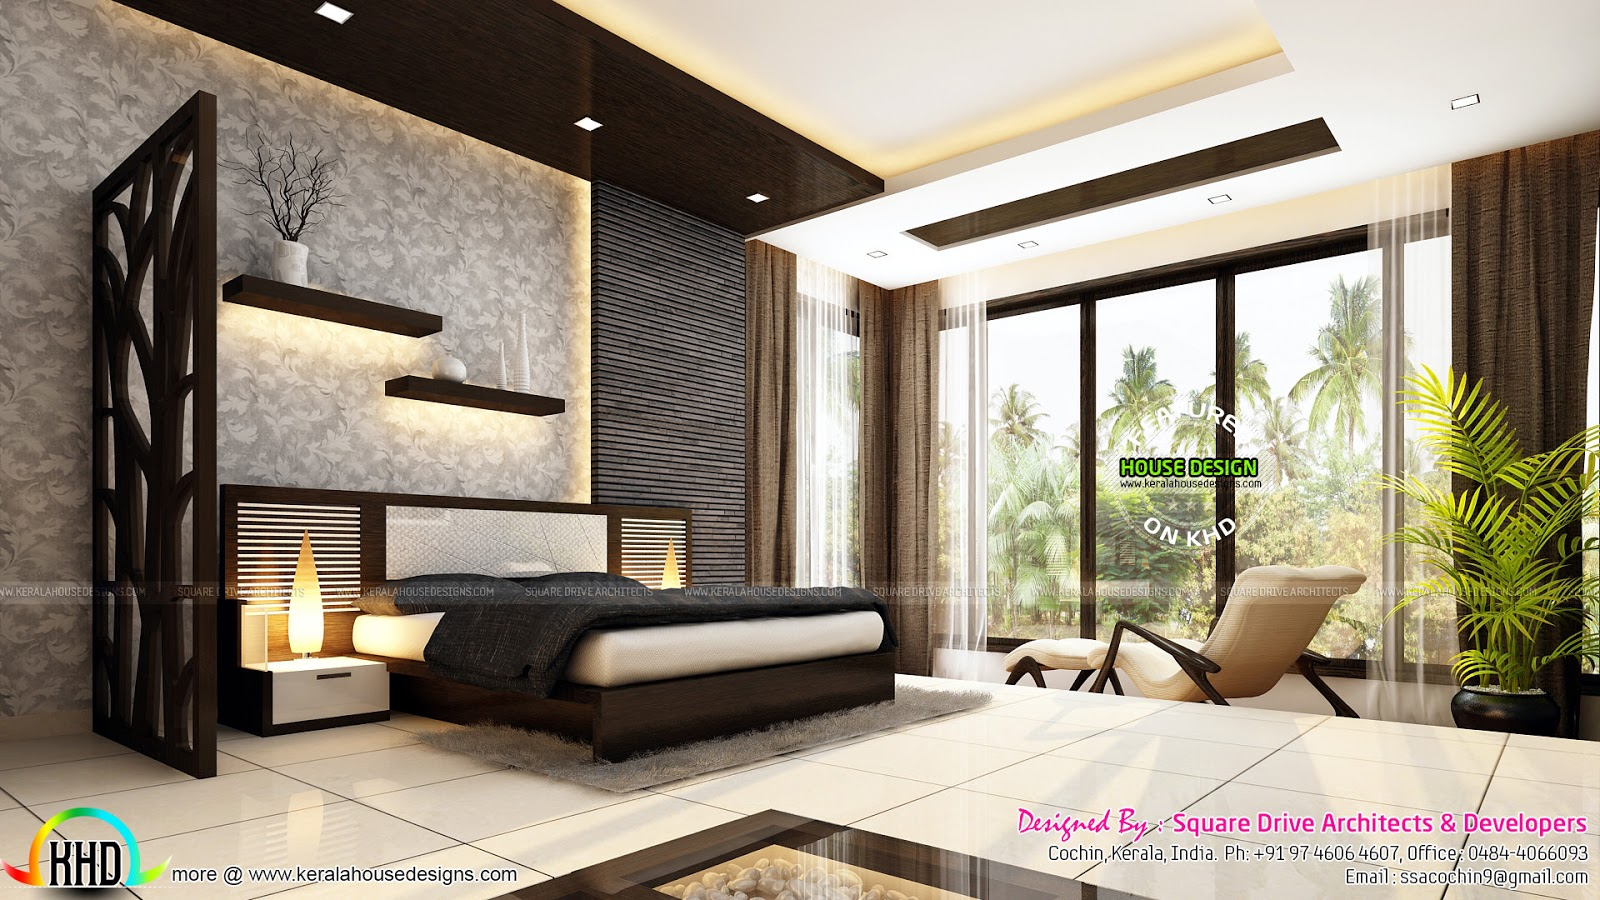 Very beautiful modern interior designs kerala home for Modern bedroom interior designs